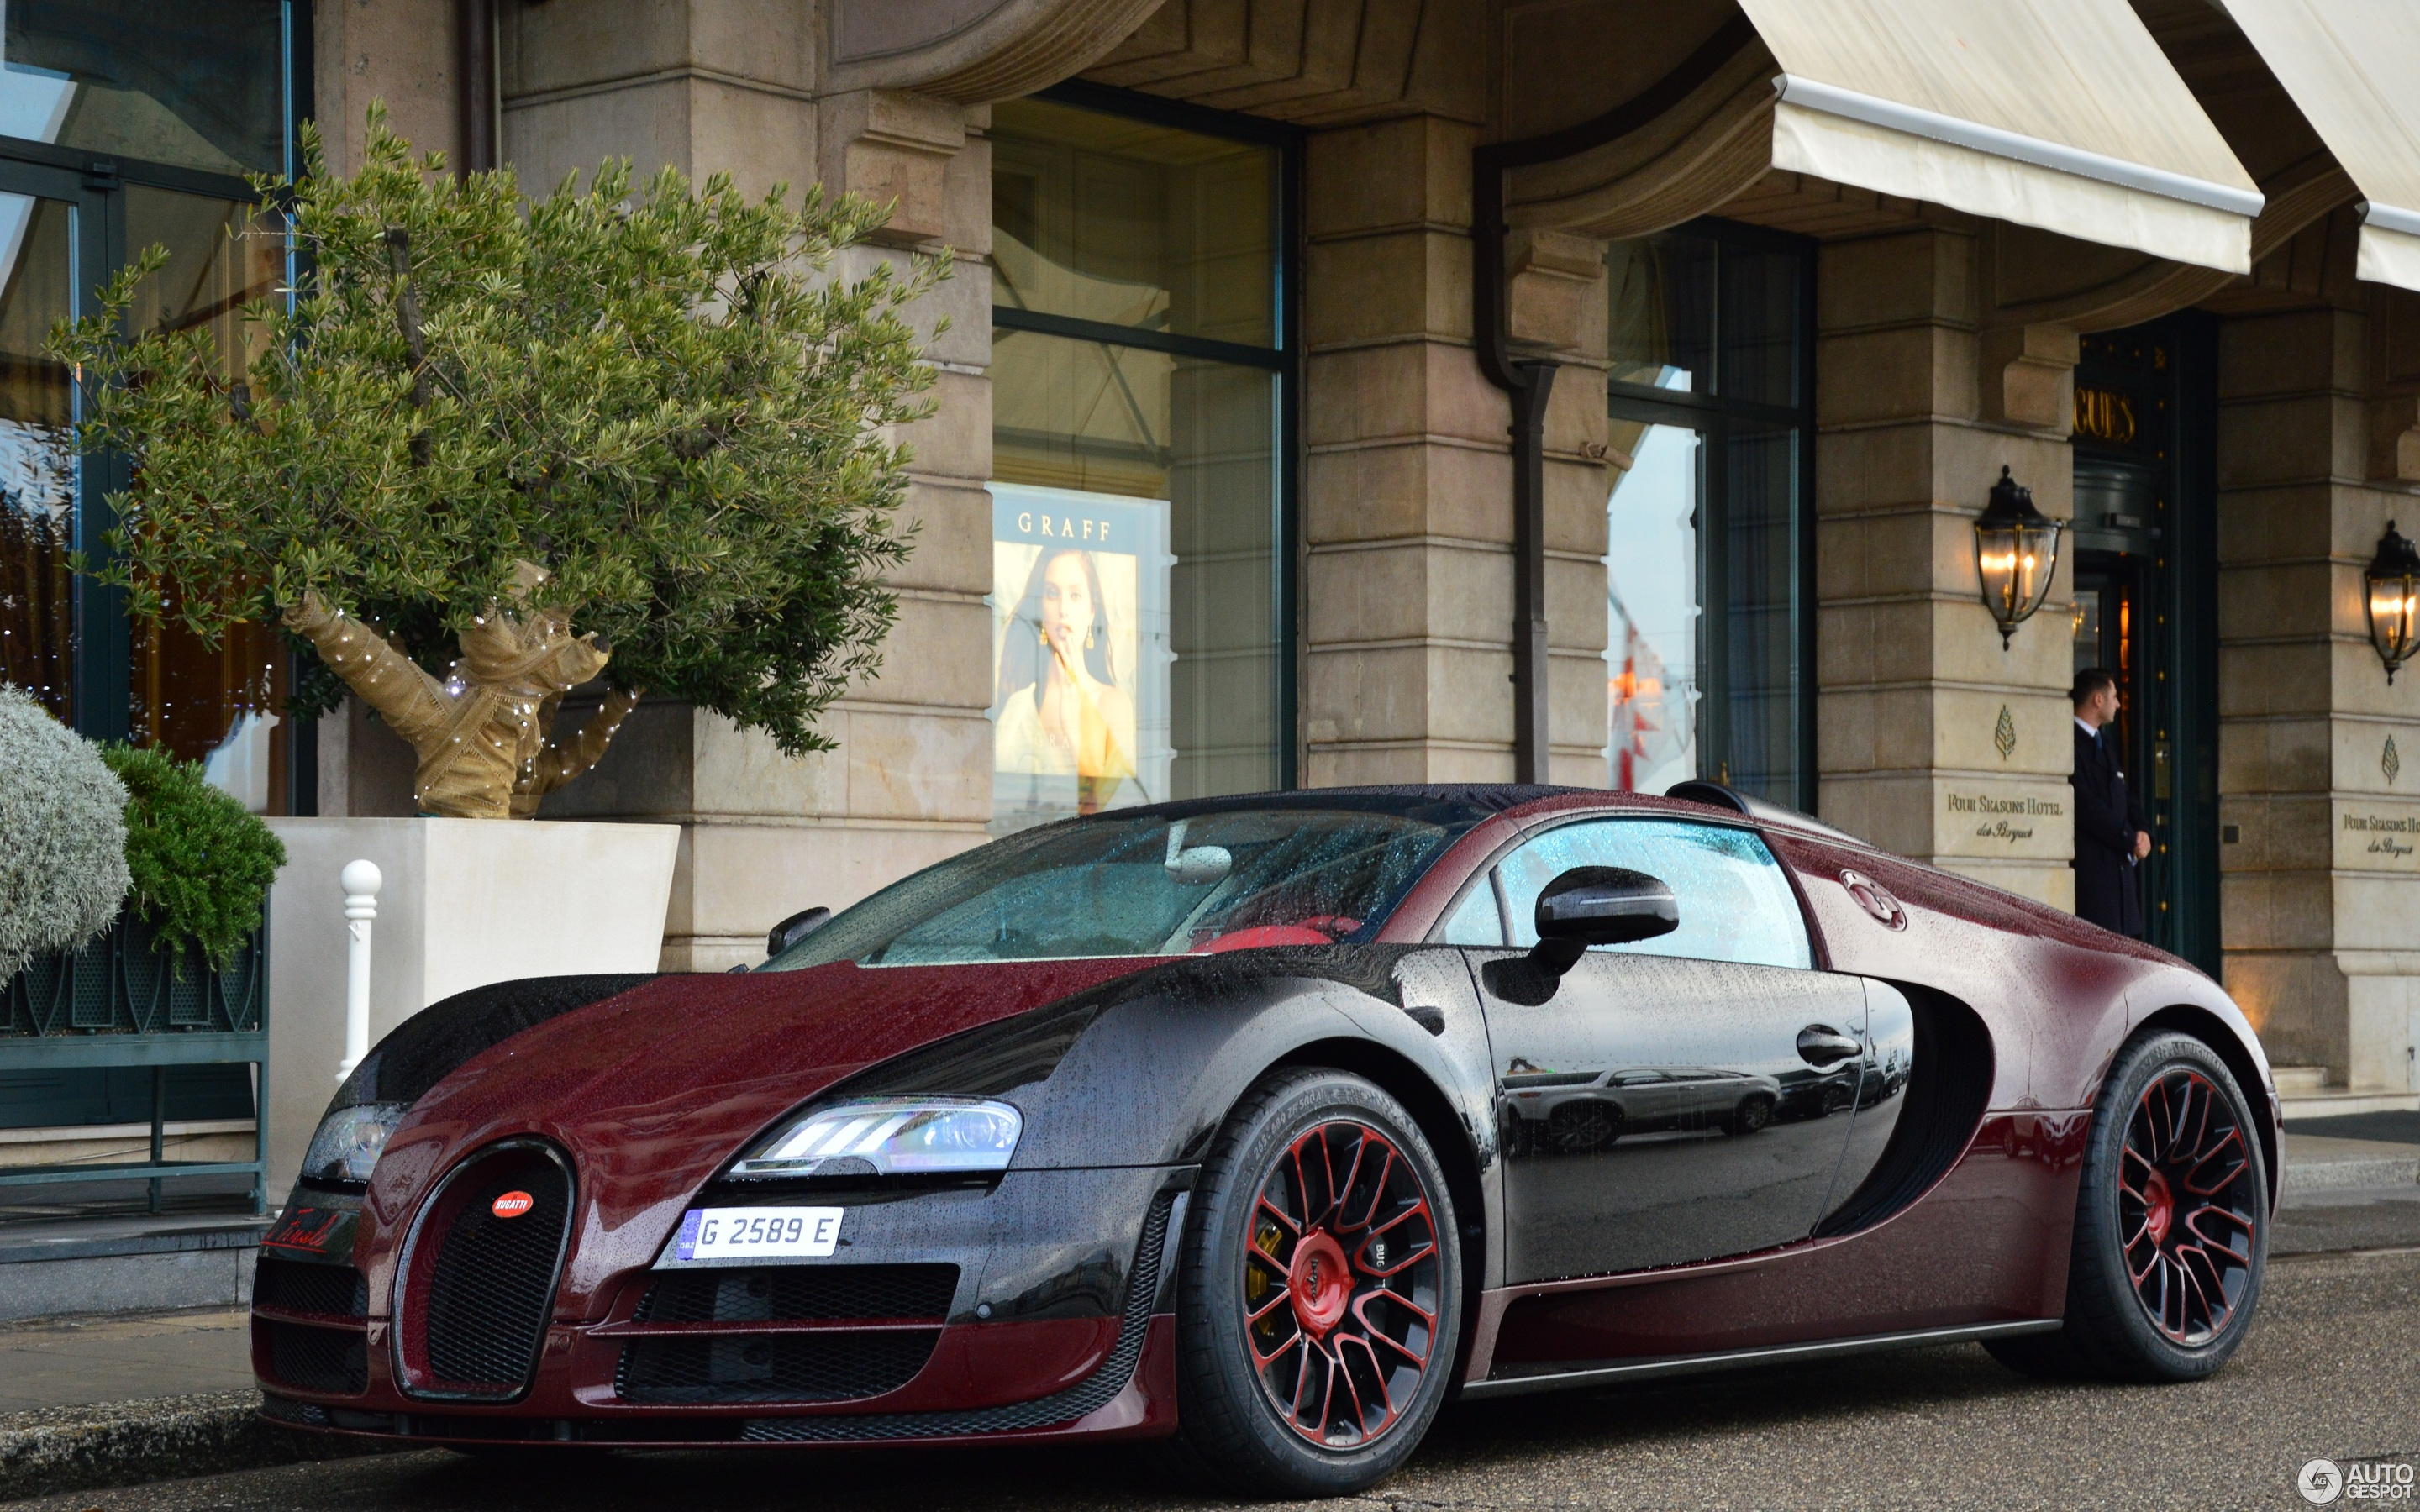 Image result wey dey for picture of bugatti veyron 16.4 grand sport vitesse la finale